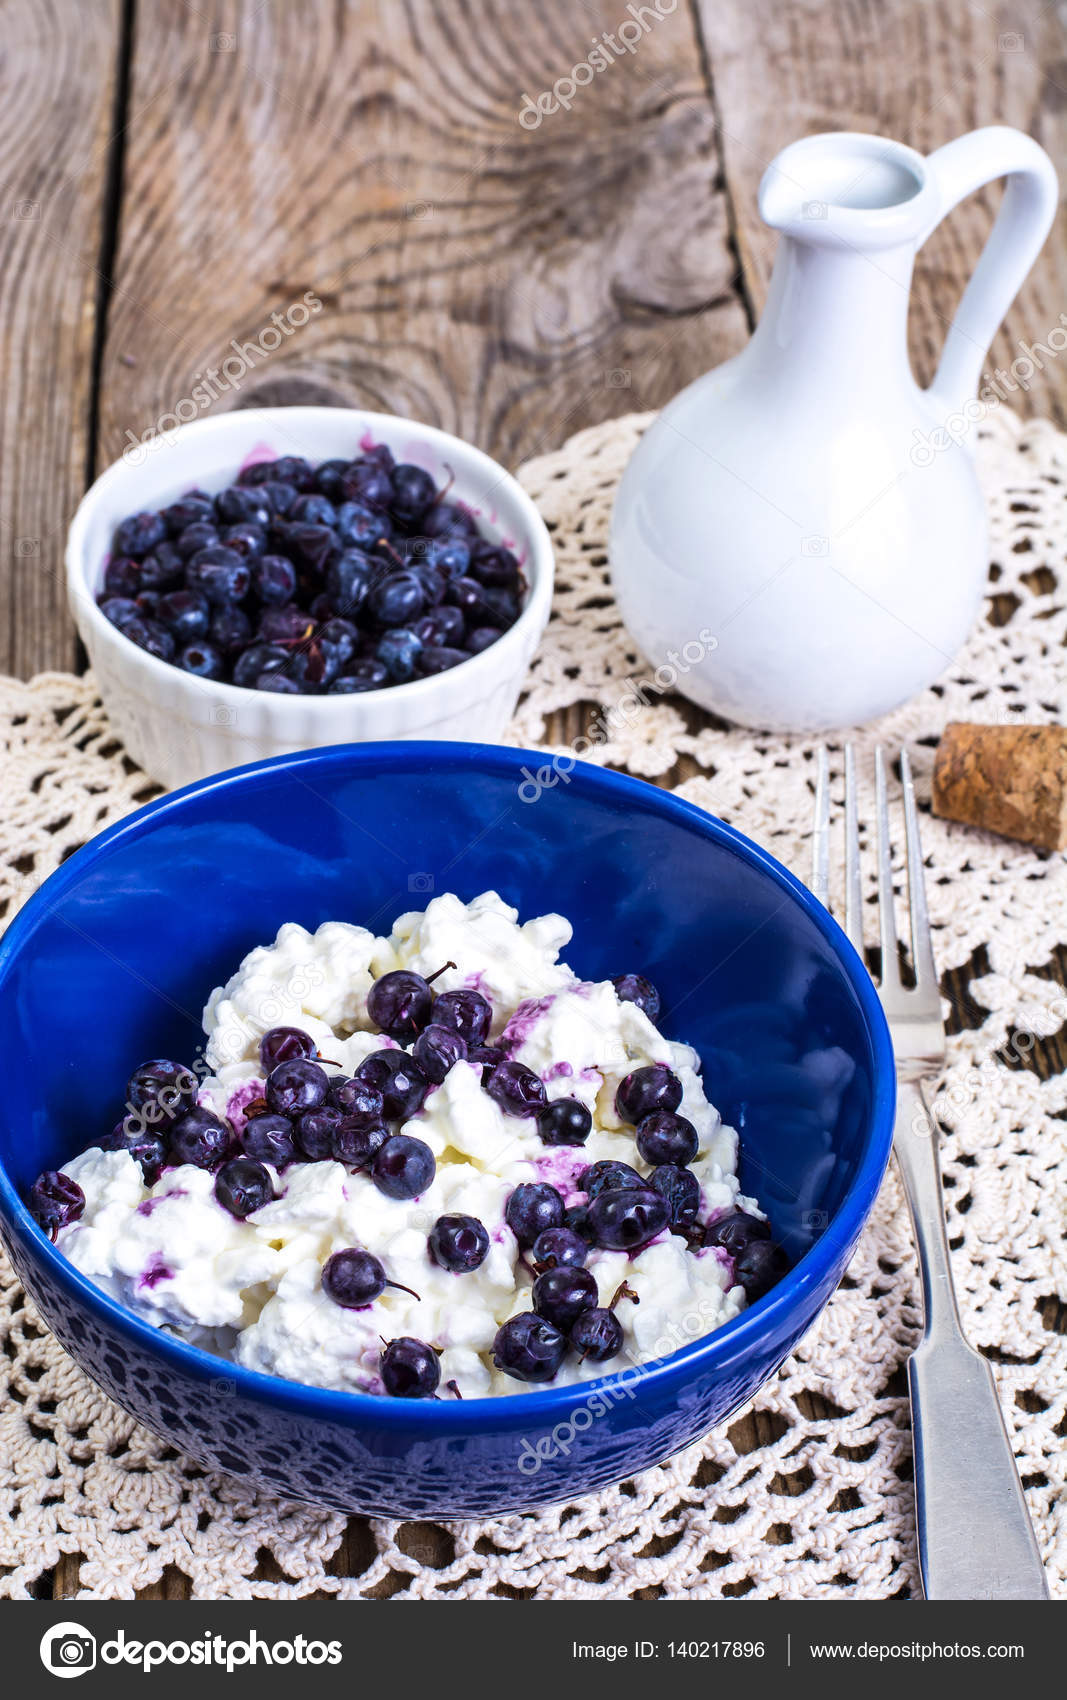 Healthy Food: Cottage Cheese With Frozen Blueberries U2014 Stock Photo